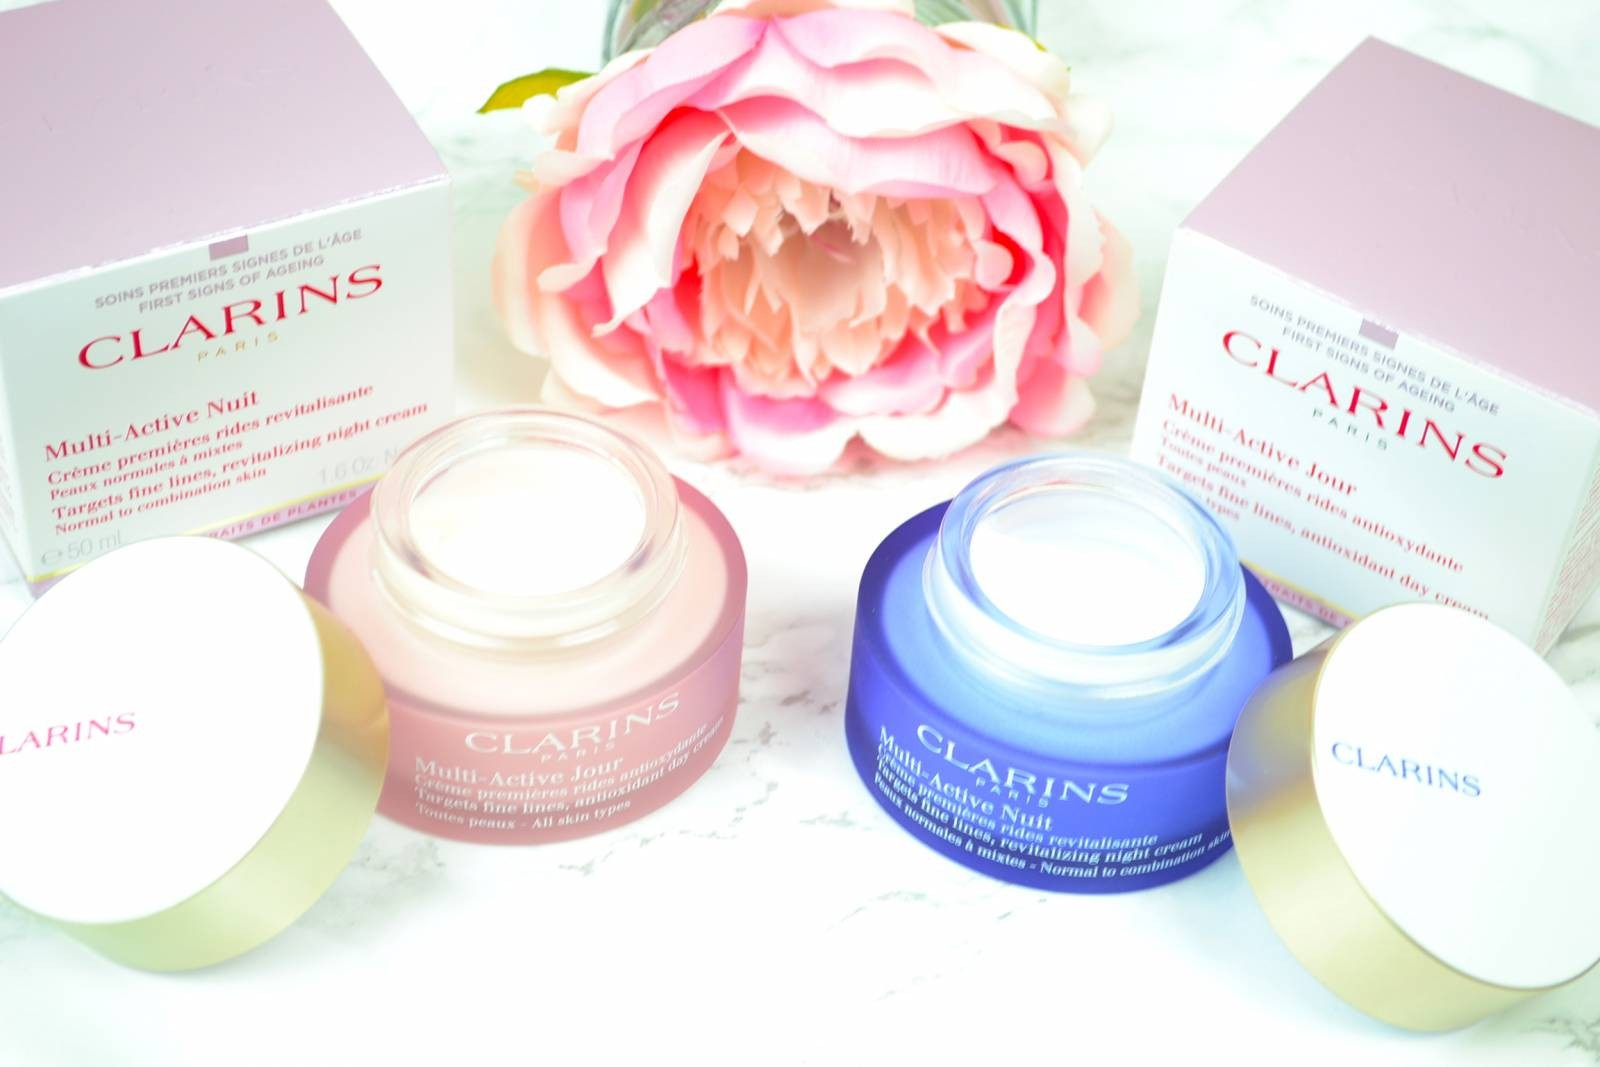 clarins-multi-active-day-night-cream